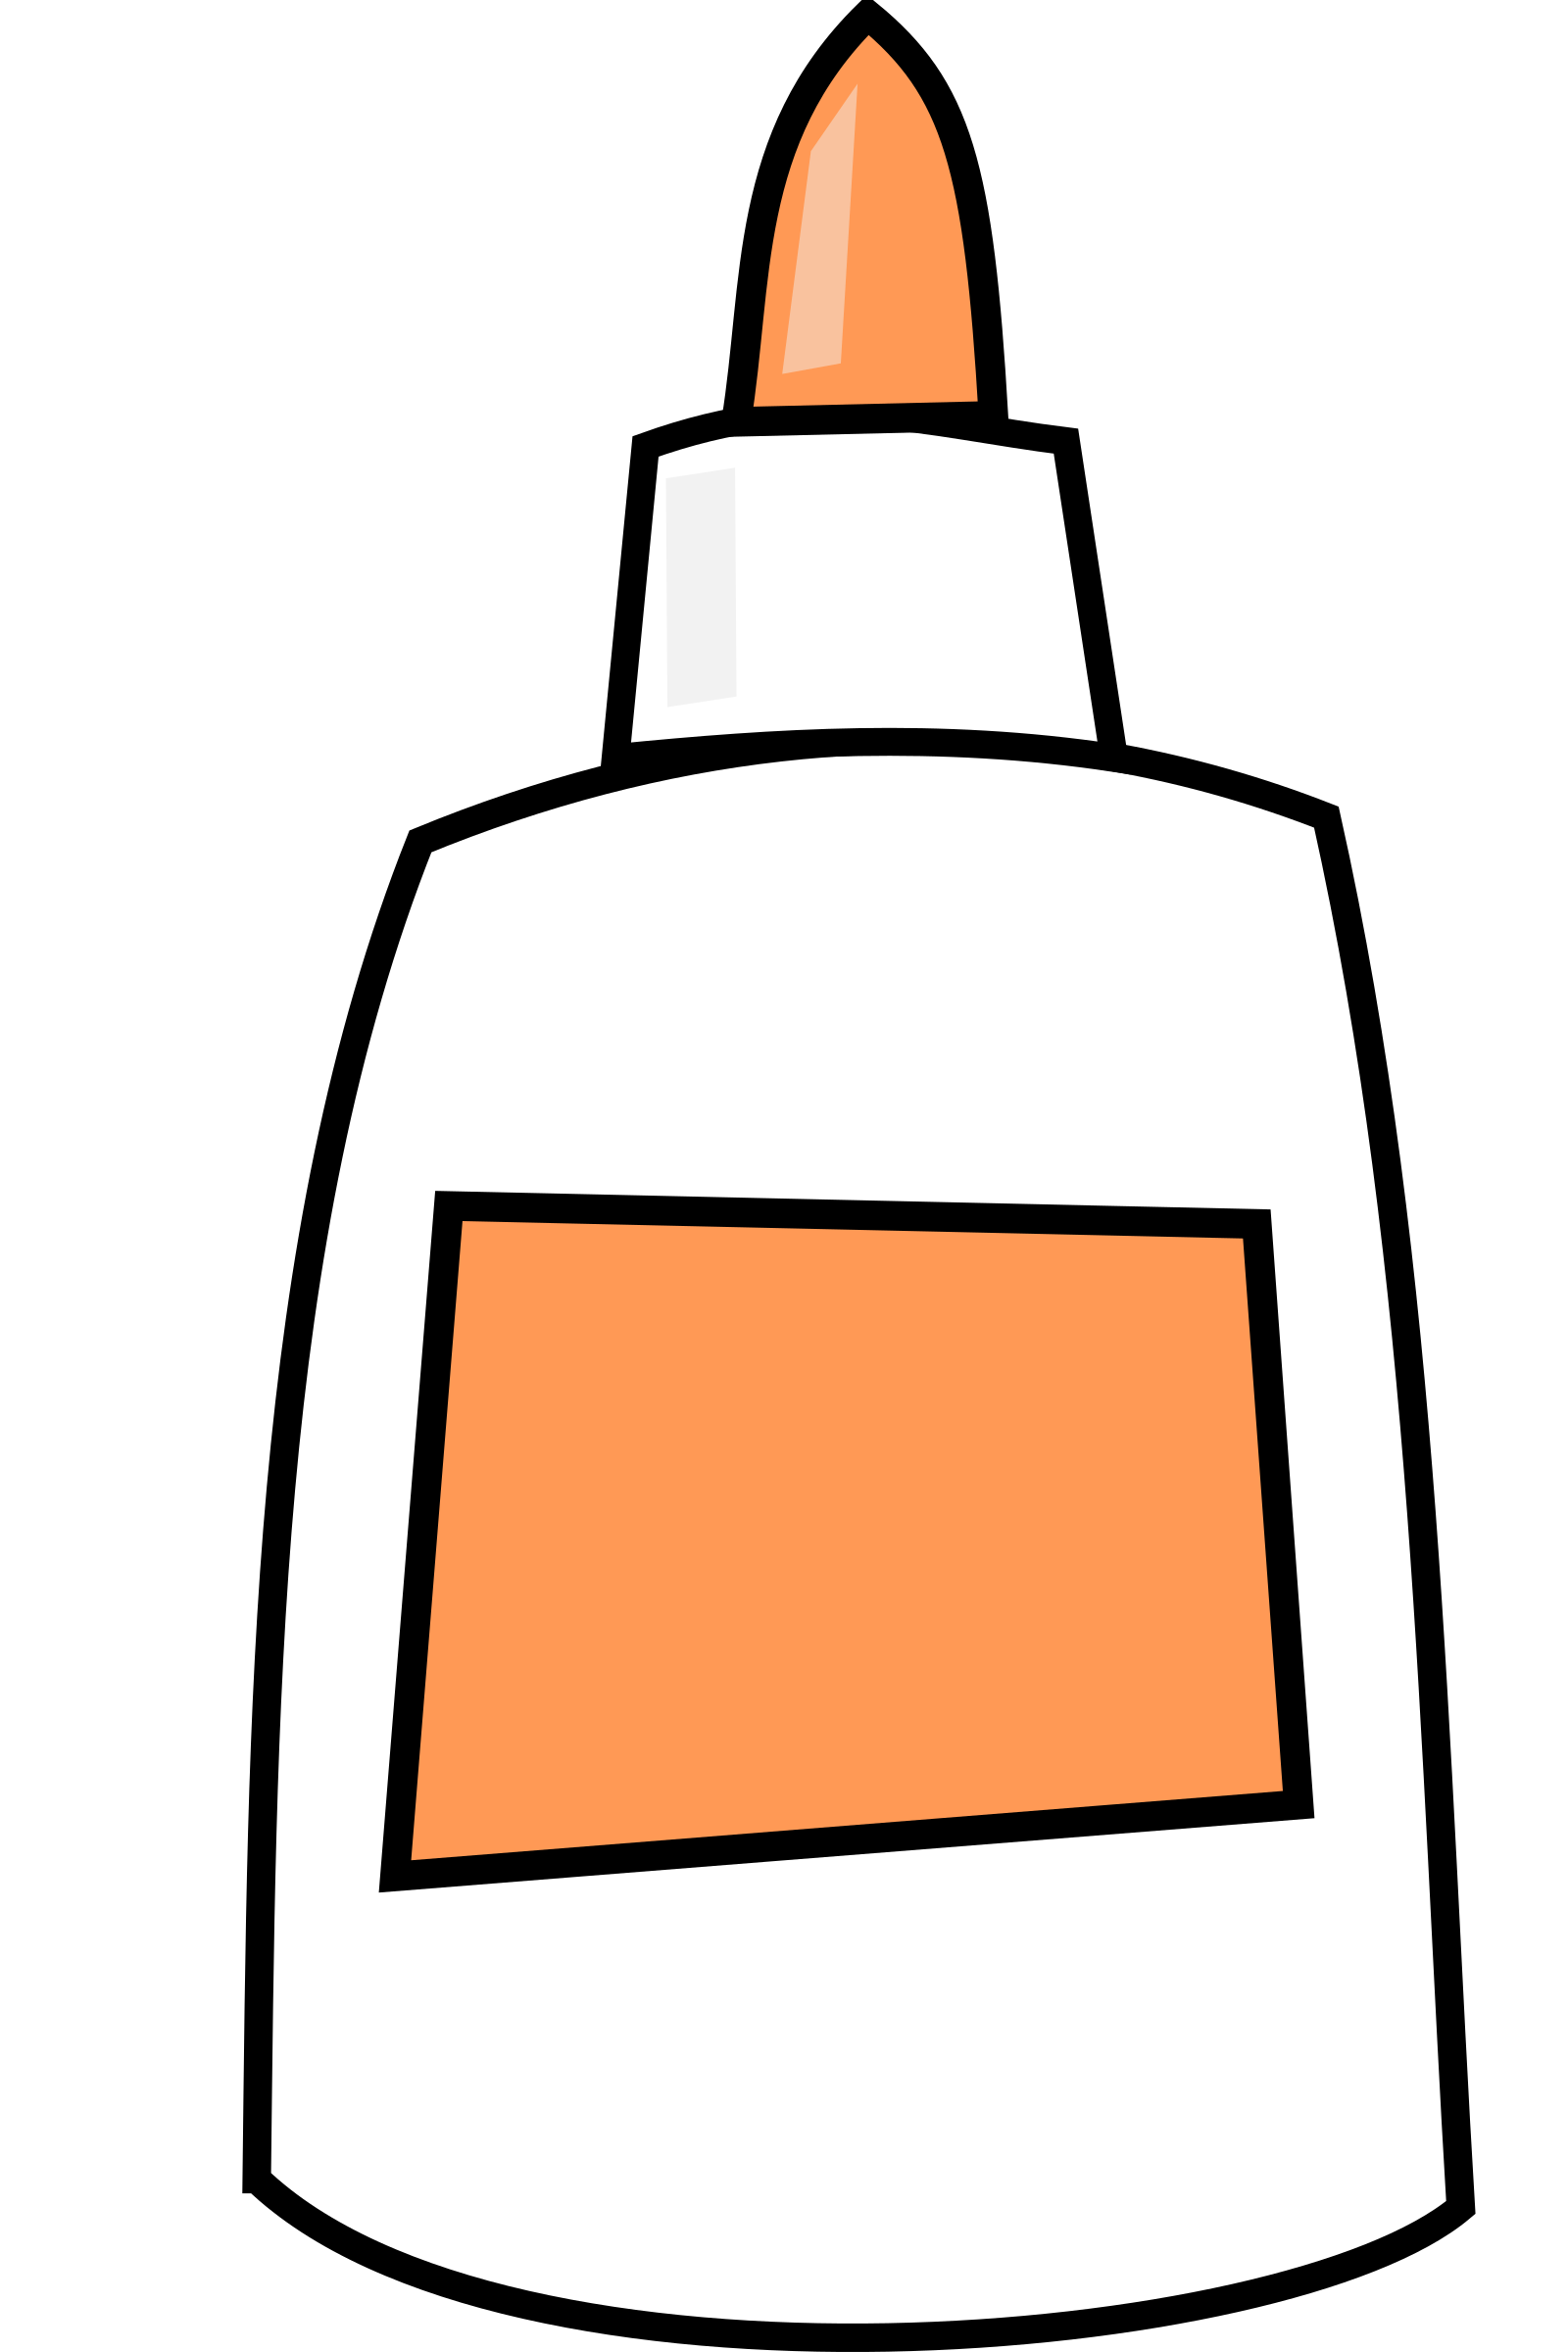 Elmers glue stick png. By lmproulx on openclipart